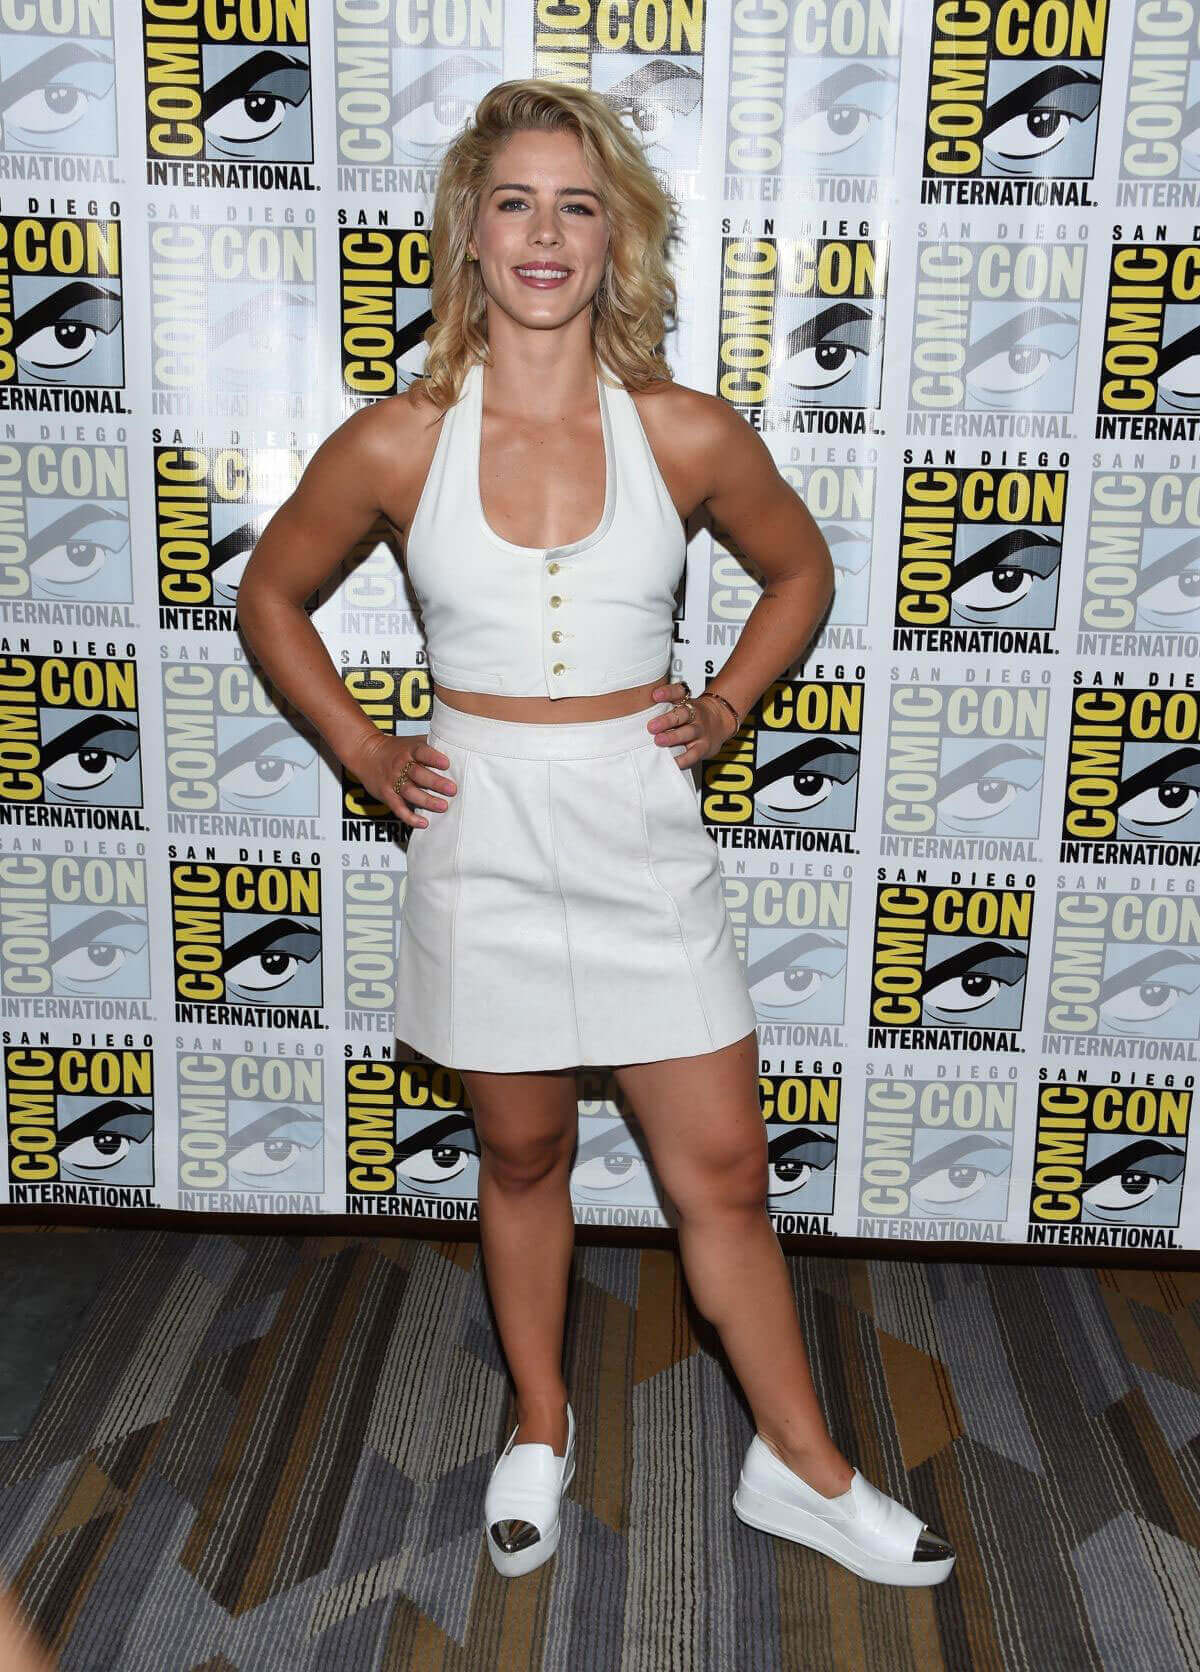 Bett Comic Emily Bett Rickards Stills At Arrow Press Line At Comic Con In San